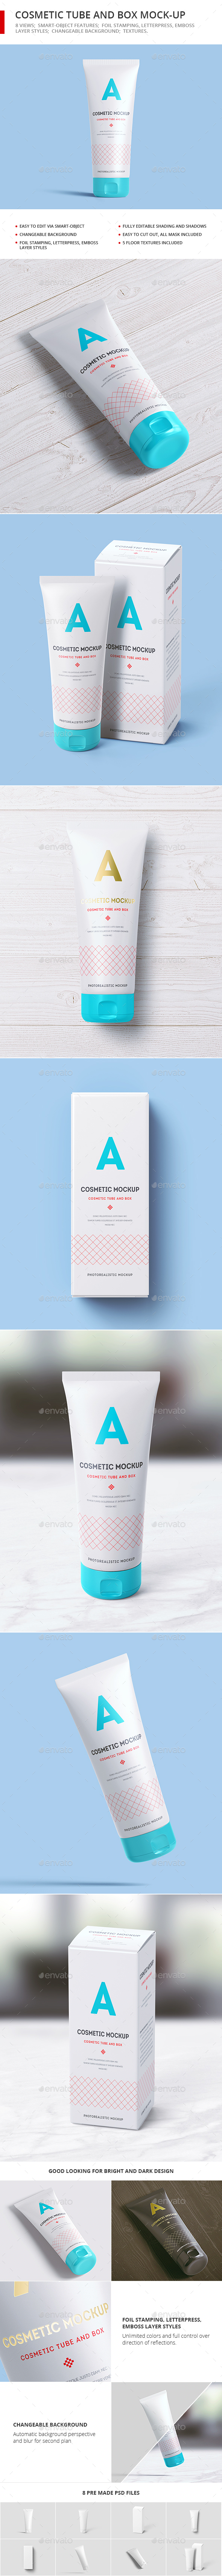 Cosmetic Tube and Box Mock-up - Beauty Packaging